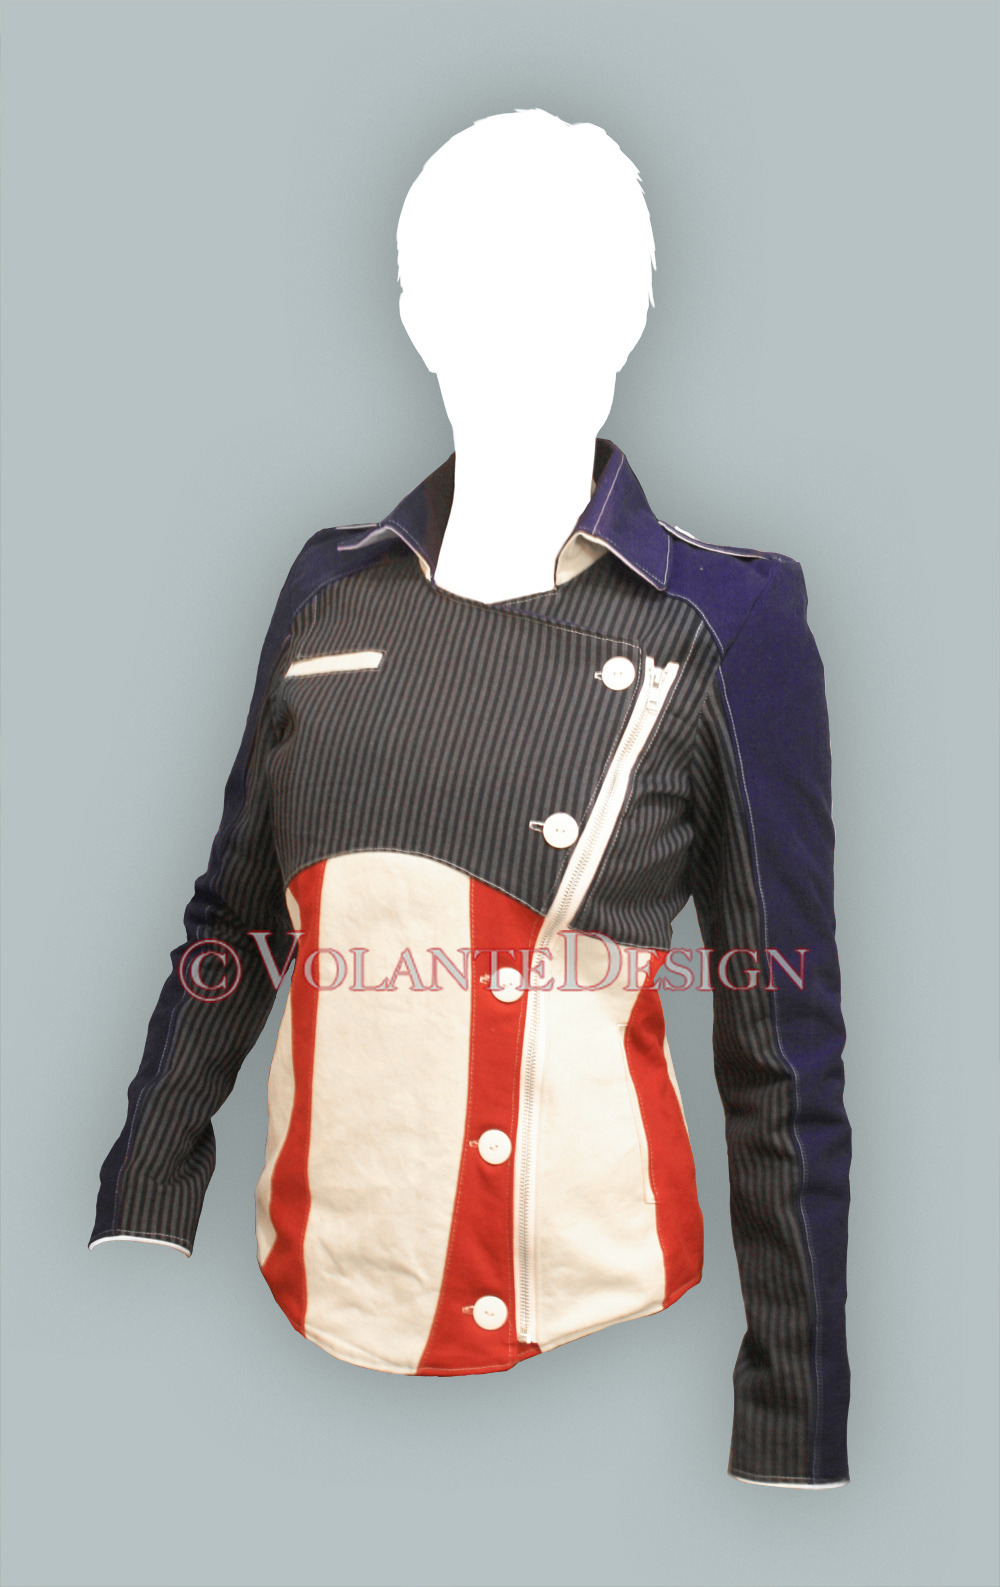 Captain America jacket. The jacket is fully lined, made to measurement, and has three pockets—1 inside, 2 outside. The full price is $395. Orders are currently closed. Follow me here or at my store, for updates.